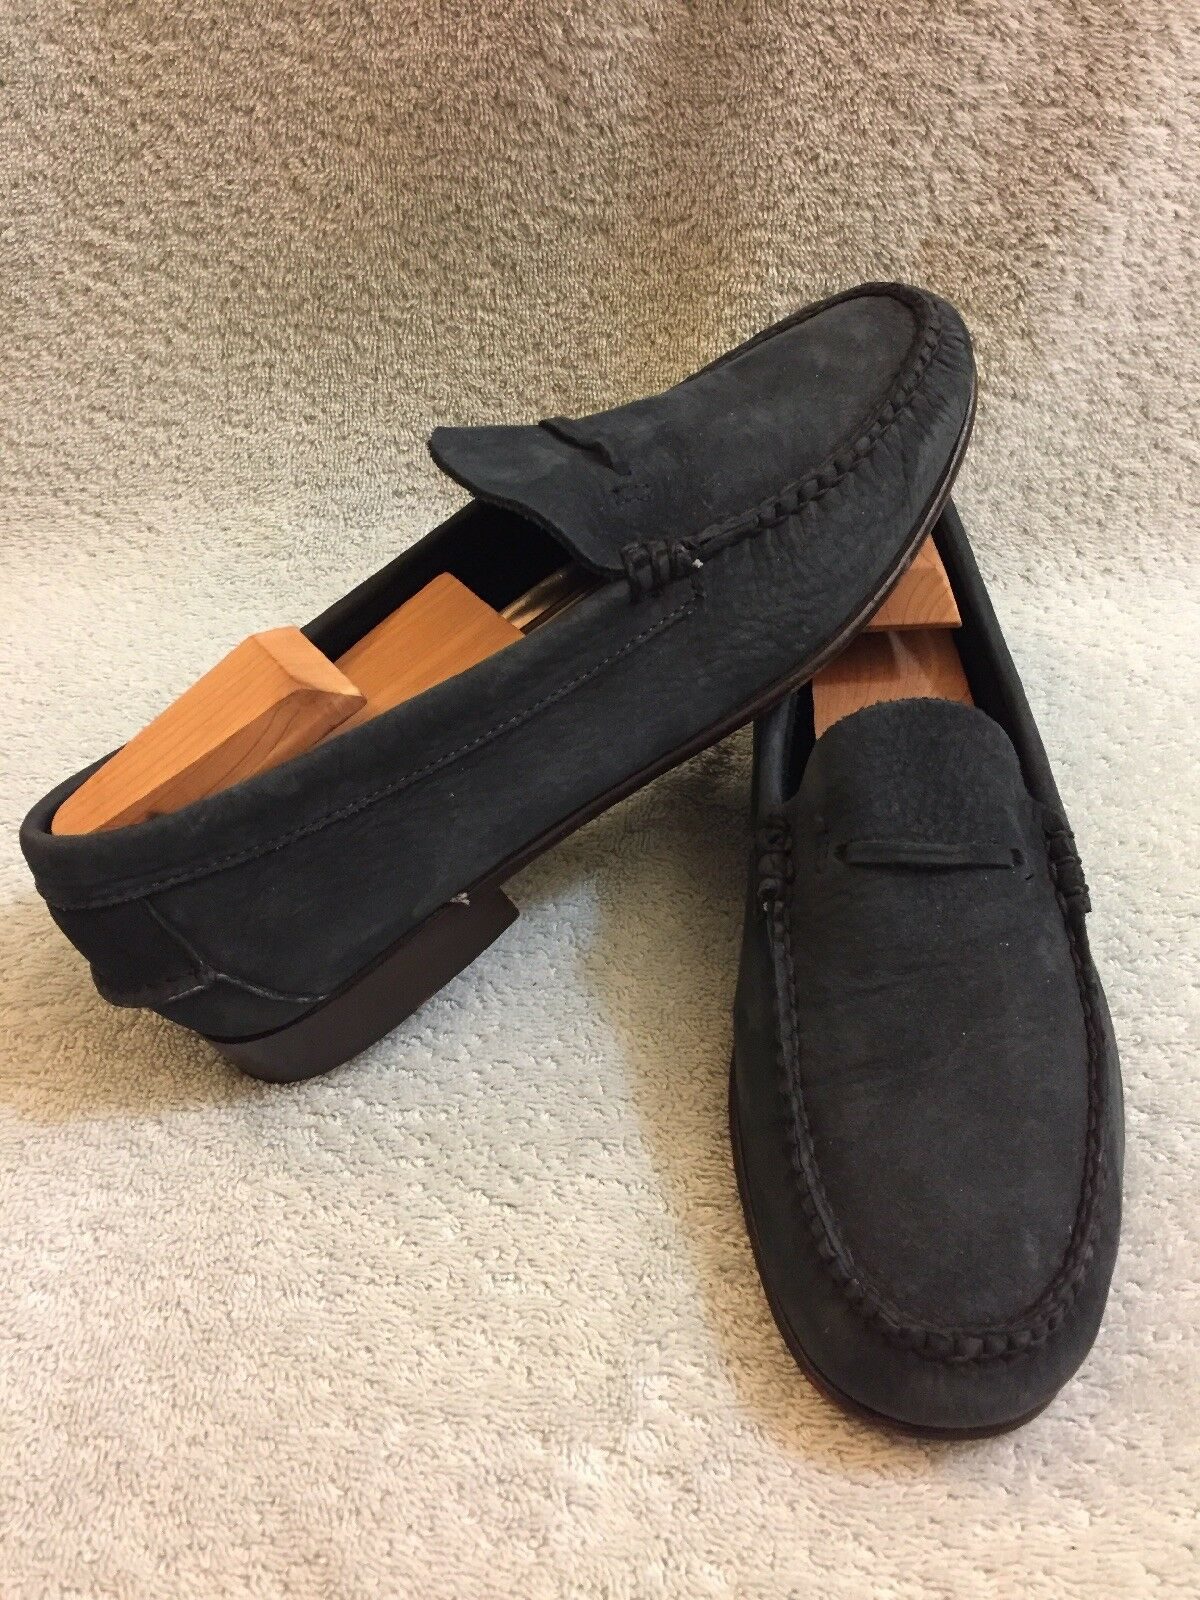 Brooks Bredhers Navy bluee Suede Casual Loafers shoes Men sz 7 D